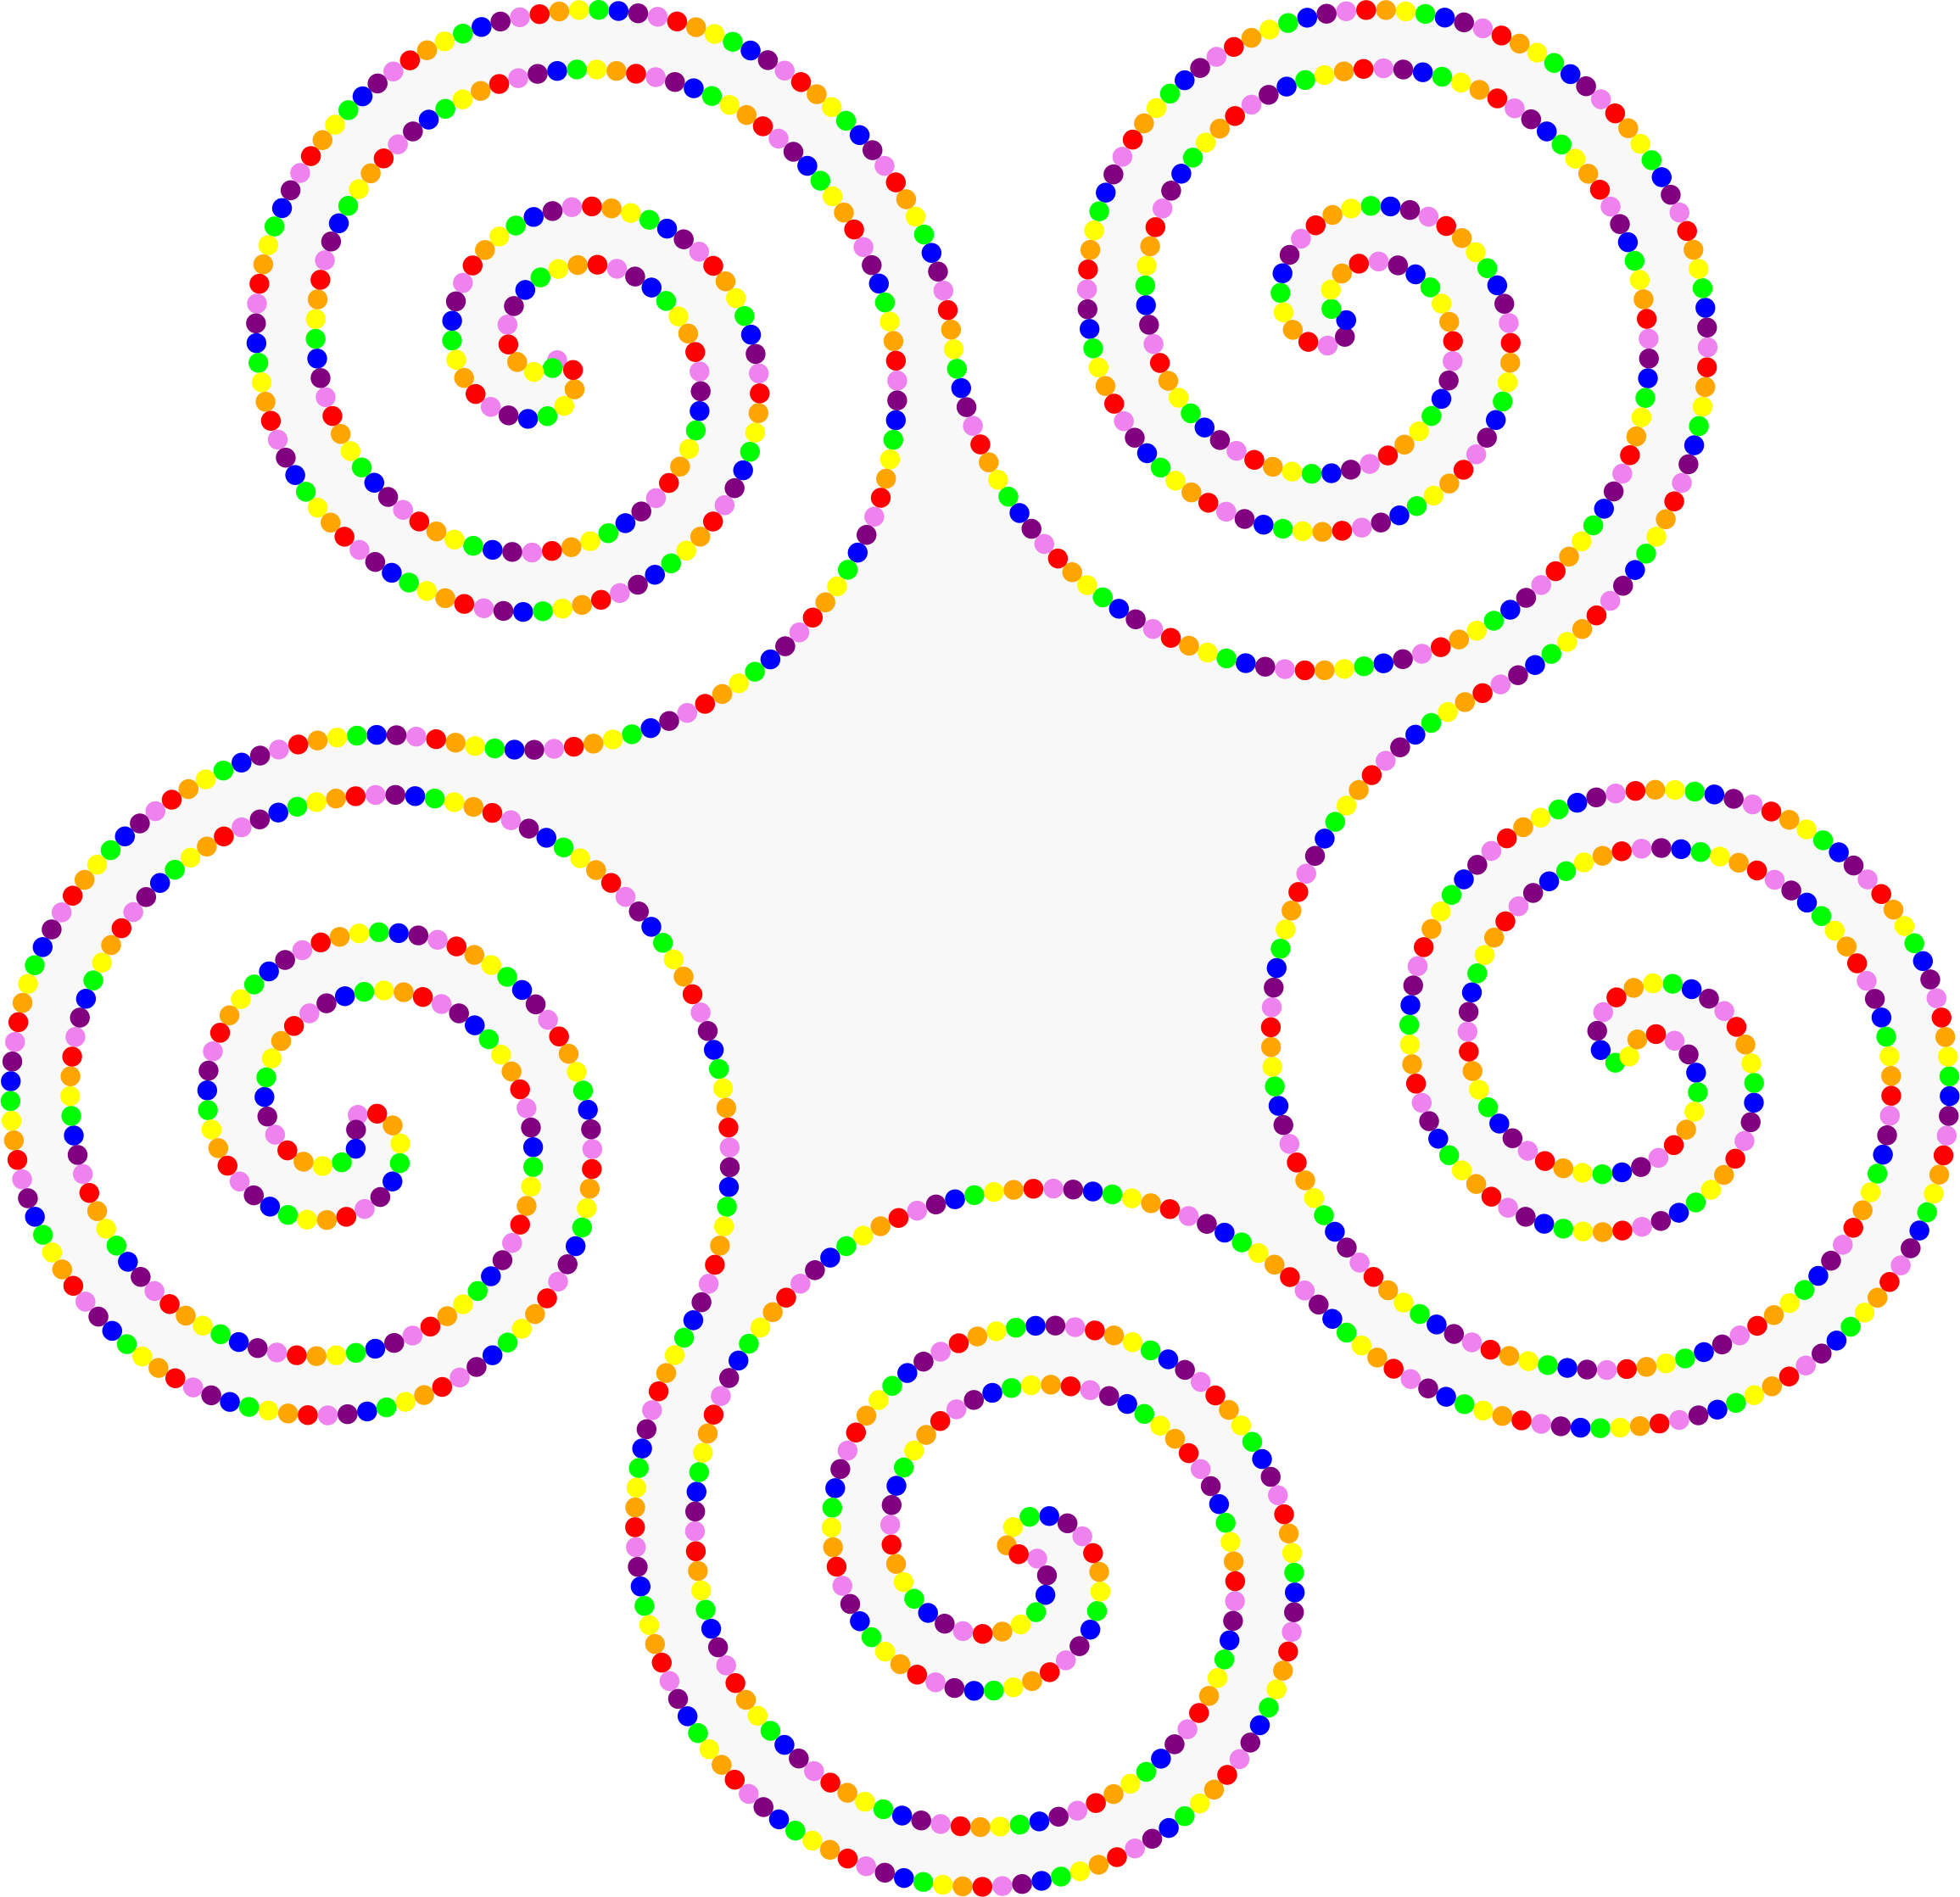 Animated Pentaskelion of Beads by JayNick